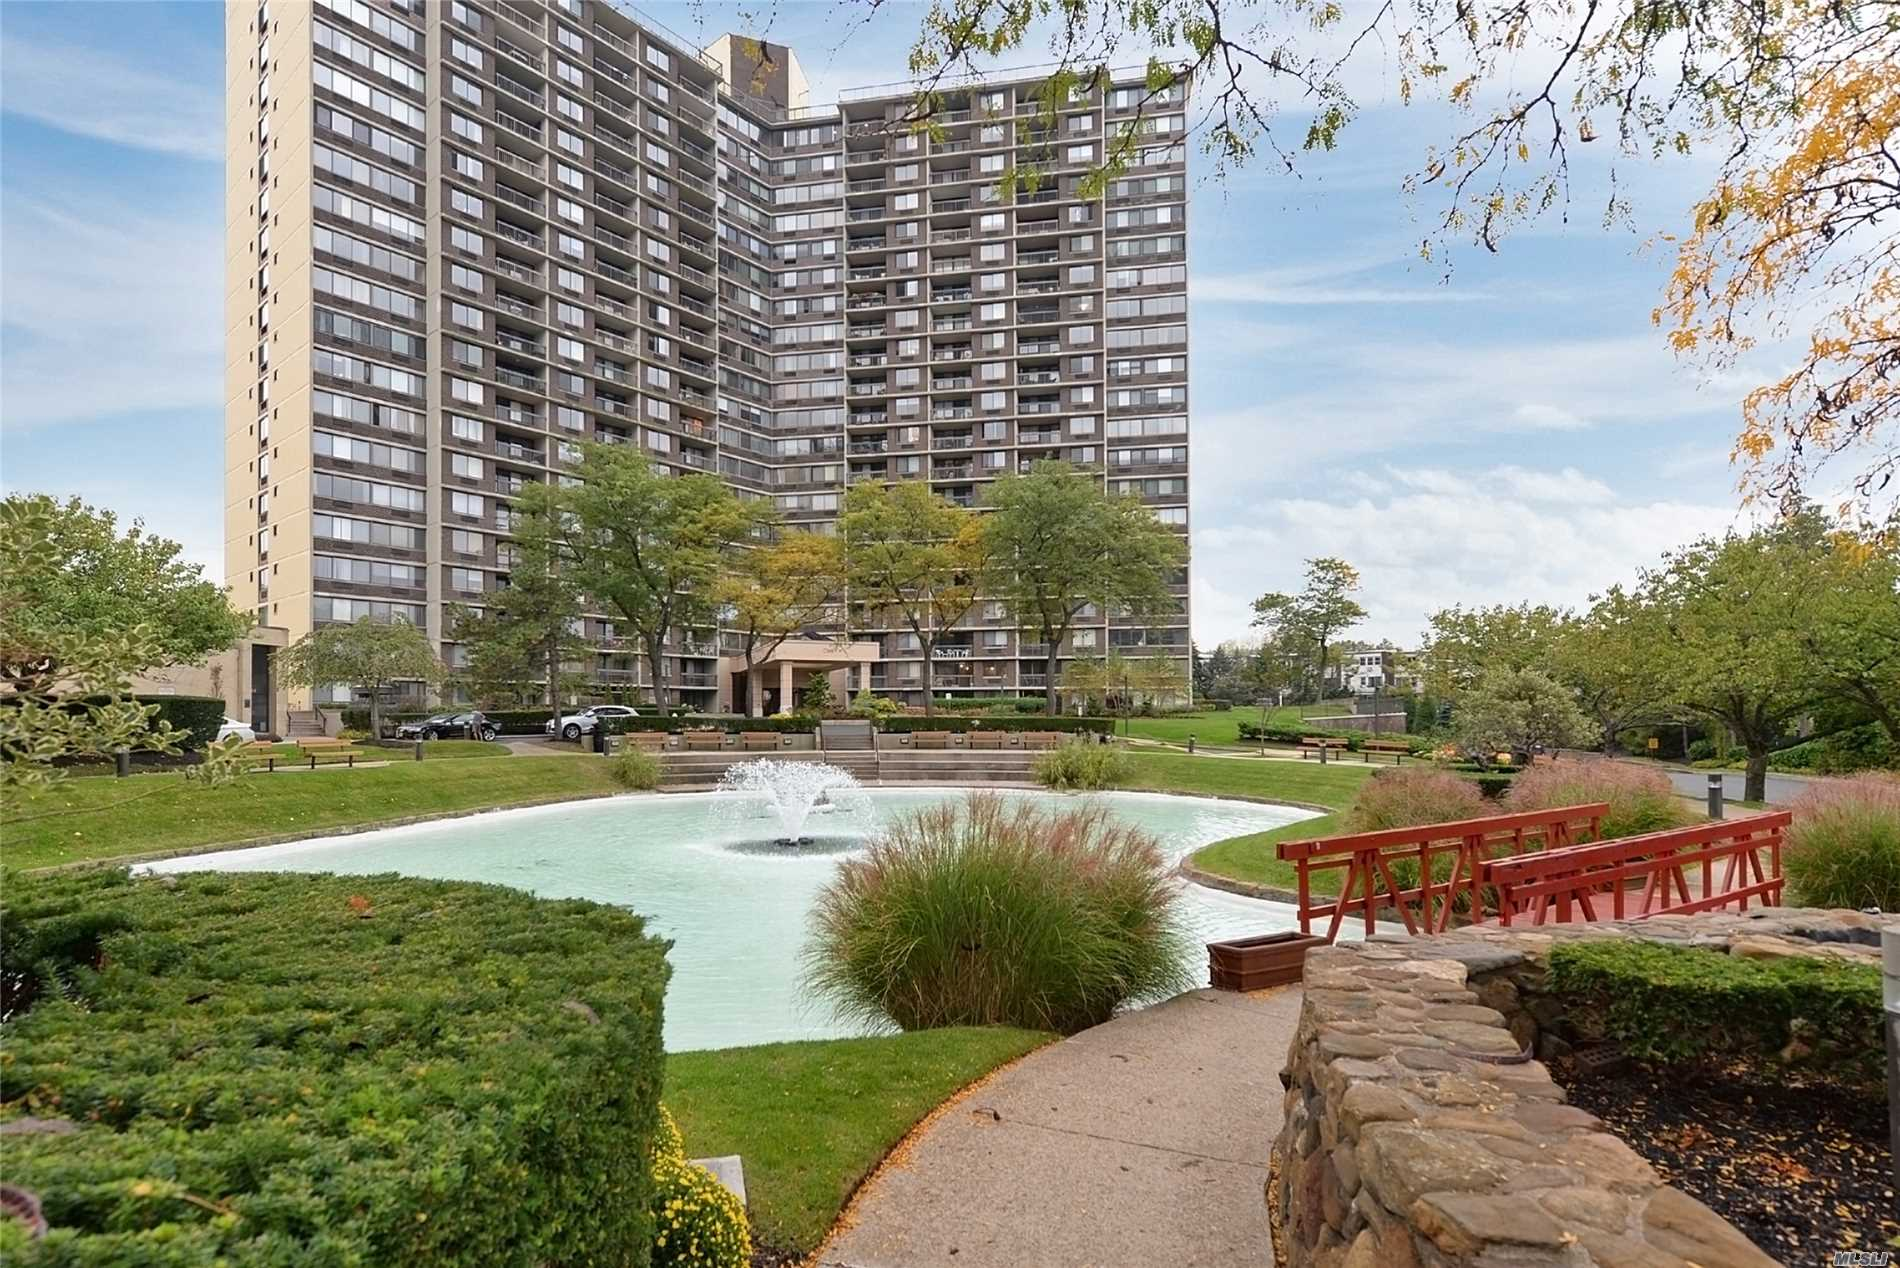 Fabulous Bay Club Gated Community. 24 Hr. Security. Doorman / Concierge. Lovely Large Studio Unit With Wood Floors. Year Round Swim & Fitness Center, Indoor Parking (Extra Fees). Free Tennis Club. Underground Stores. On Premises Restaurant. Best Location. Near Everything.